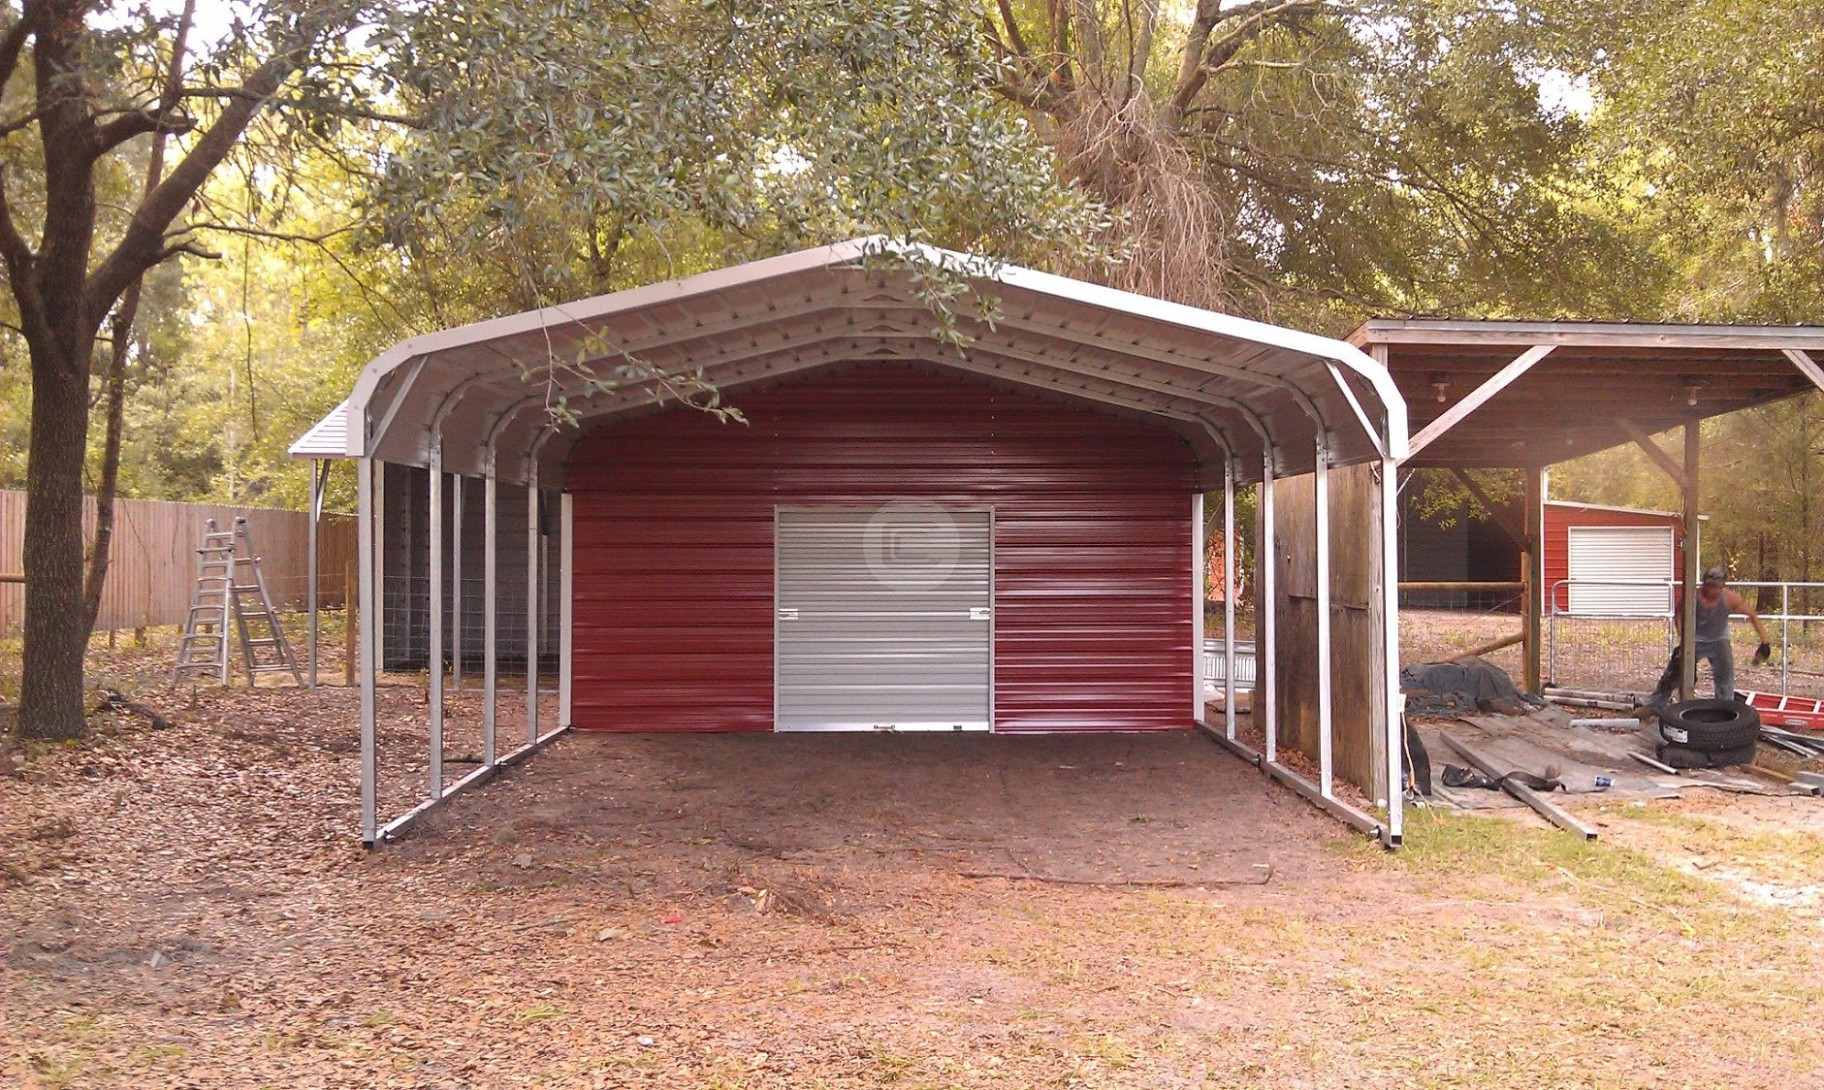 Seven Things You Should Know About Wholesale Carports And Garages | wholesale carports and garages